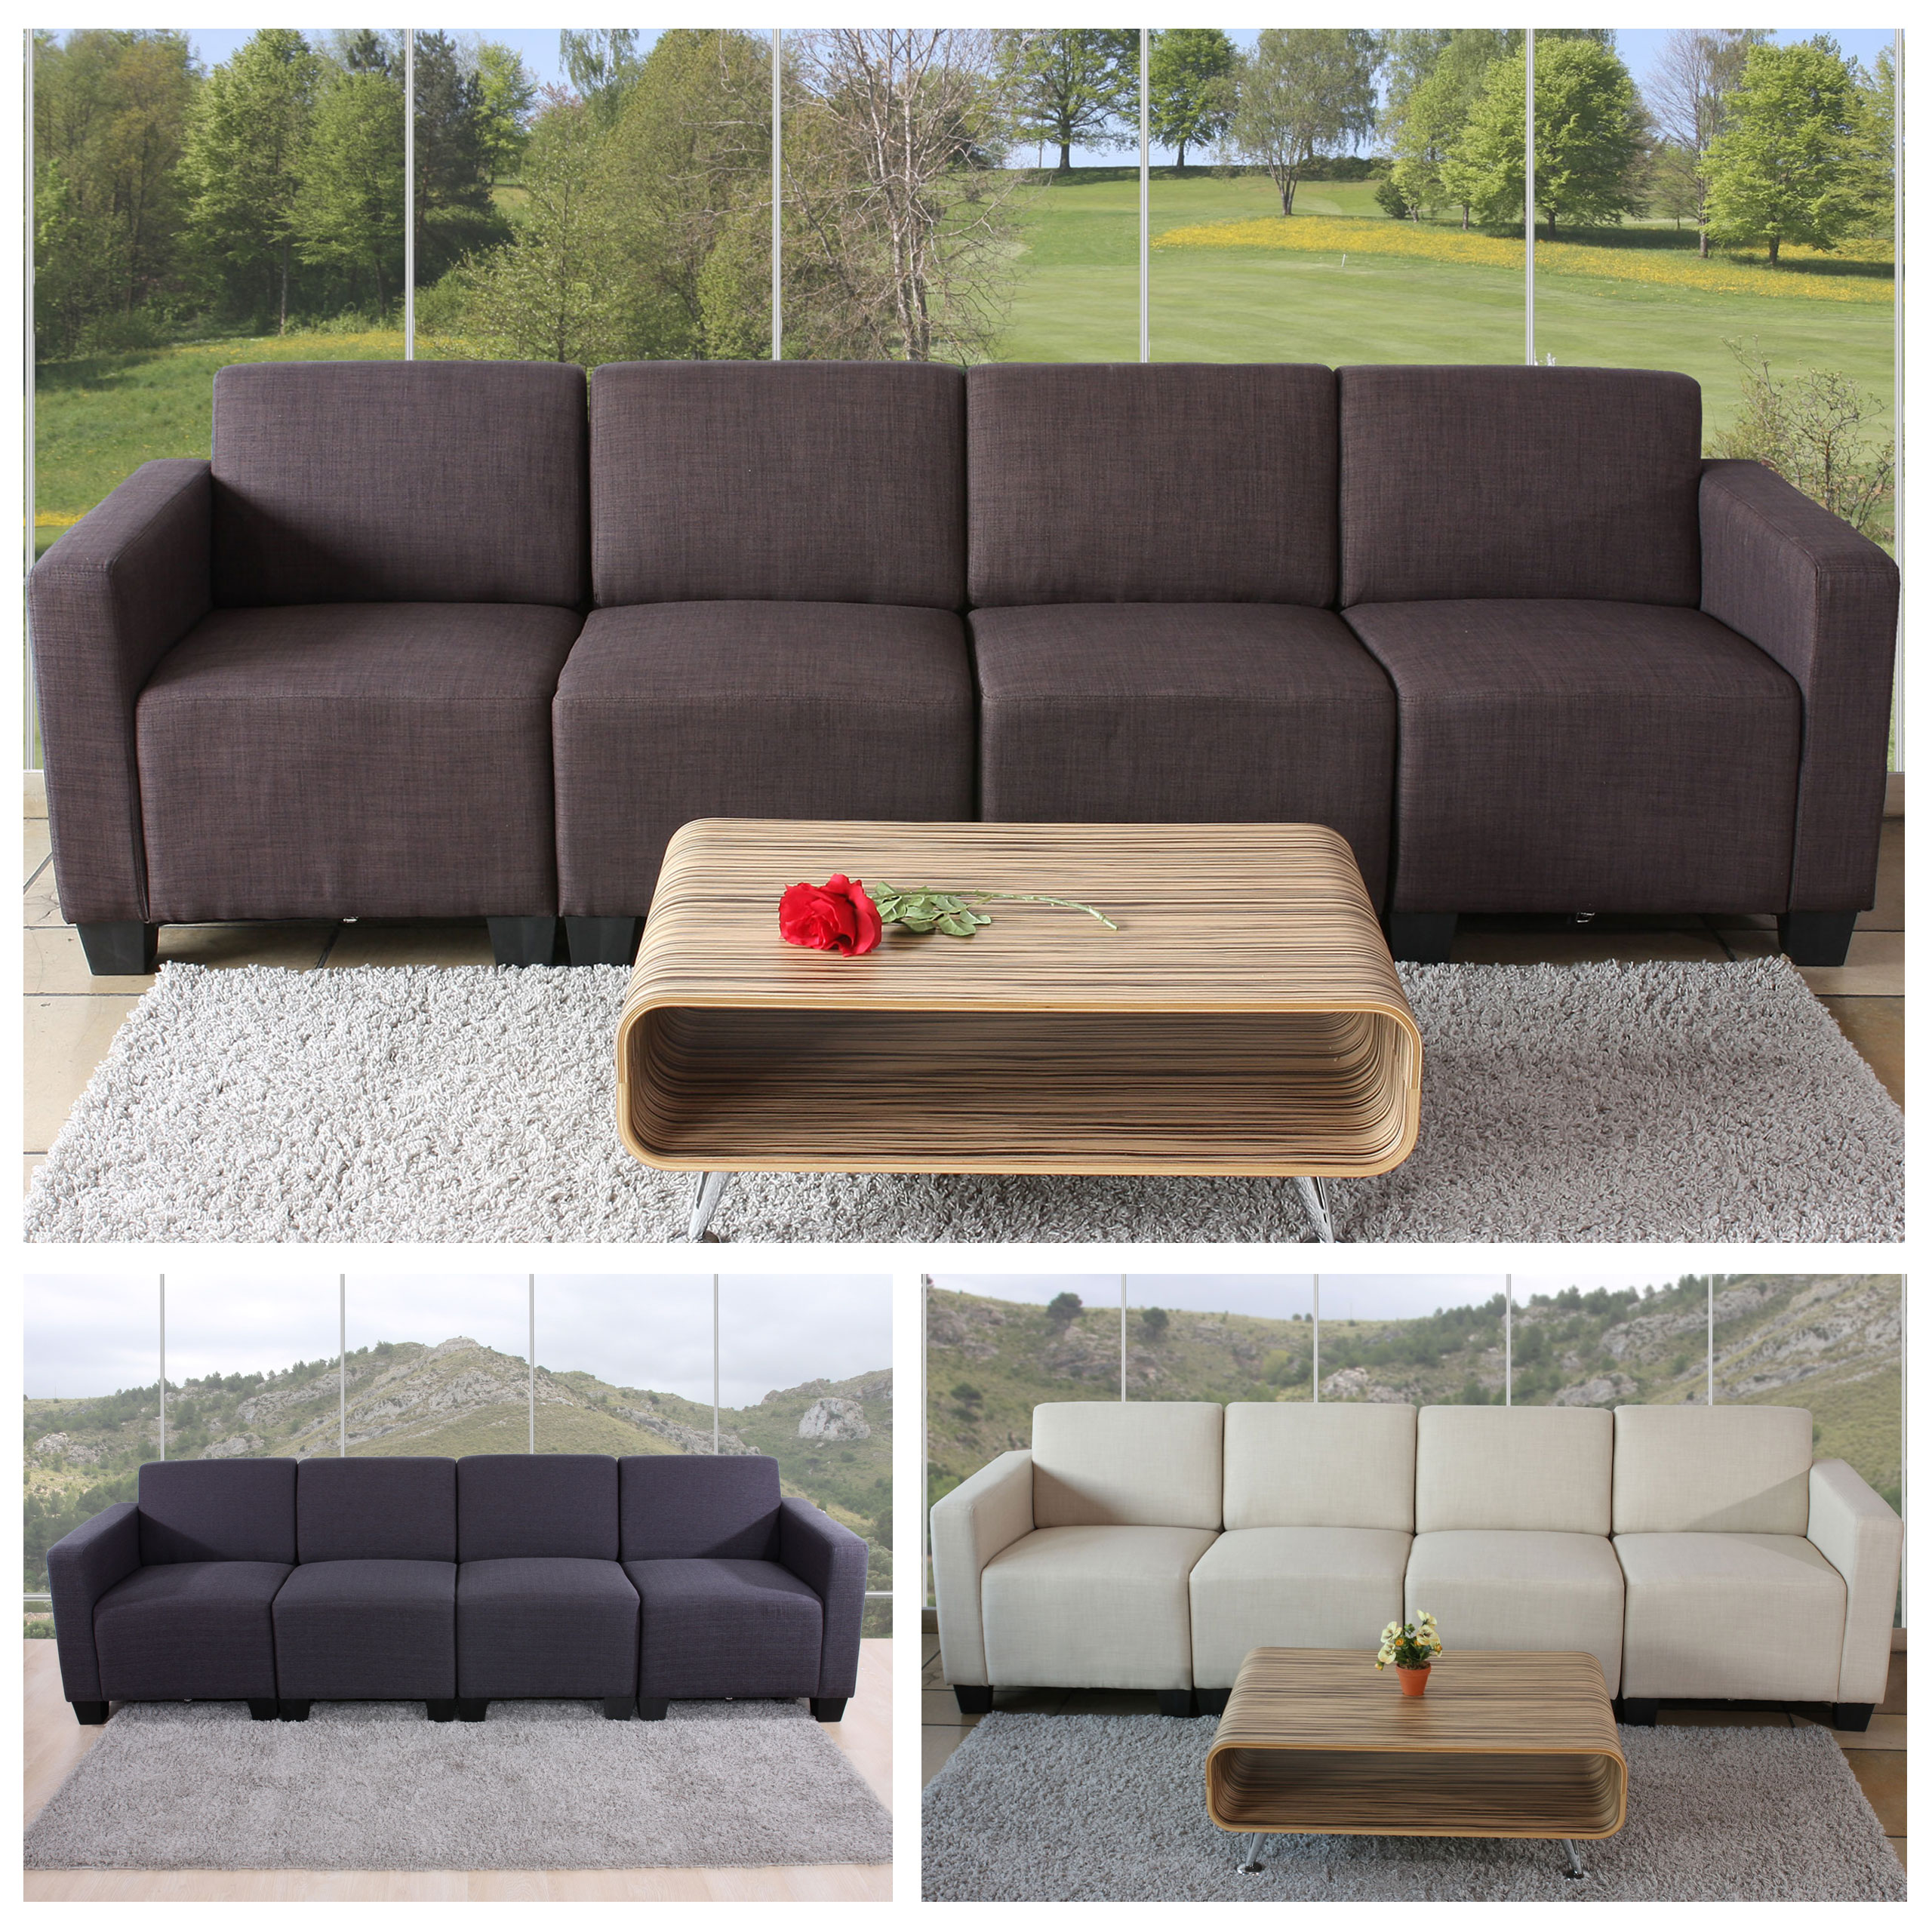 modular 4 sitzer couch sofa lyon textil braun creme. Black Bedroom Furniture Sets. Home Design Ideas